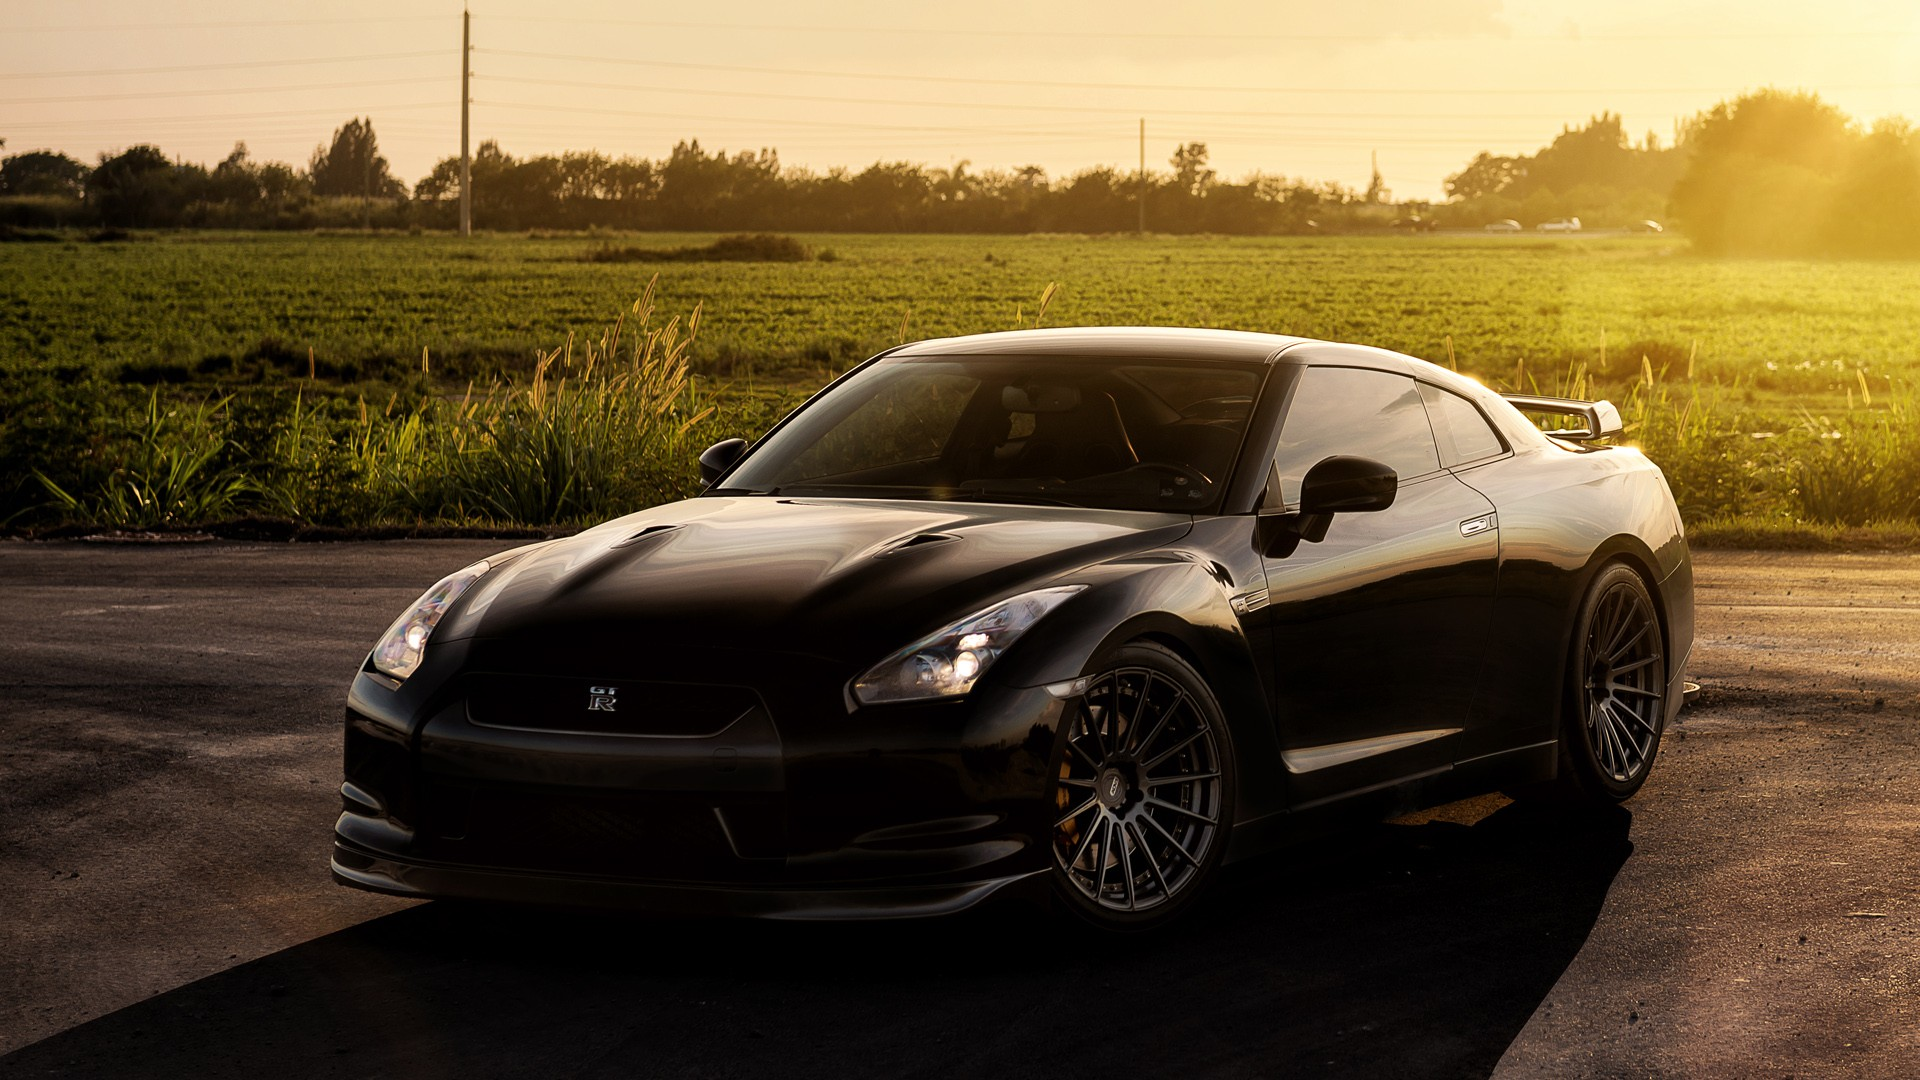 Nissan Gtr On Adv1 Wheels Wallpaper Hd Car Wallpapers